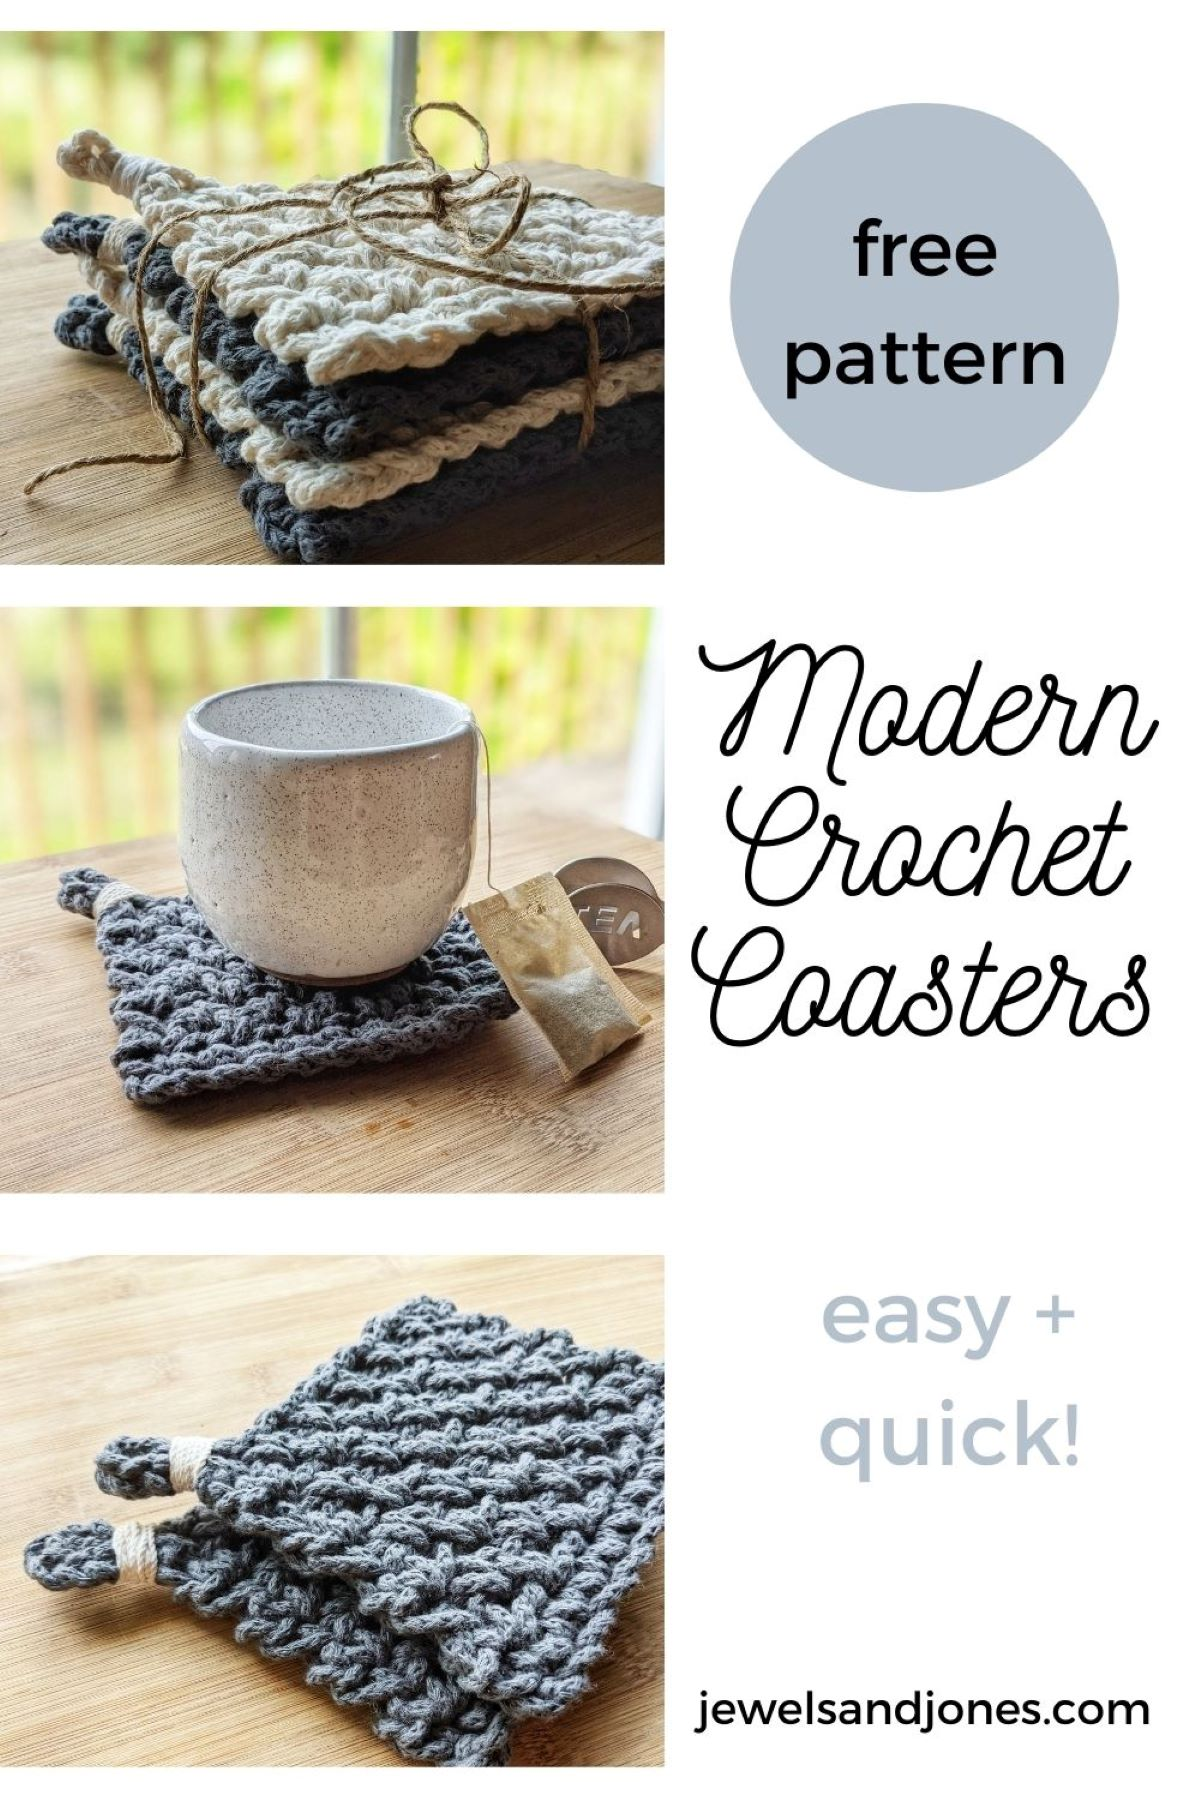 3 different pictures of the free crochet coaster pattern